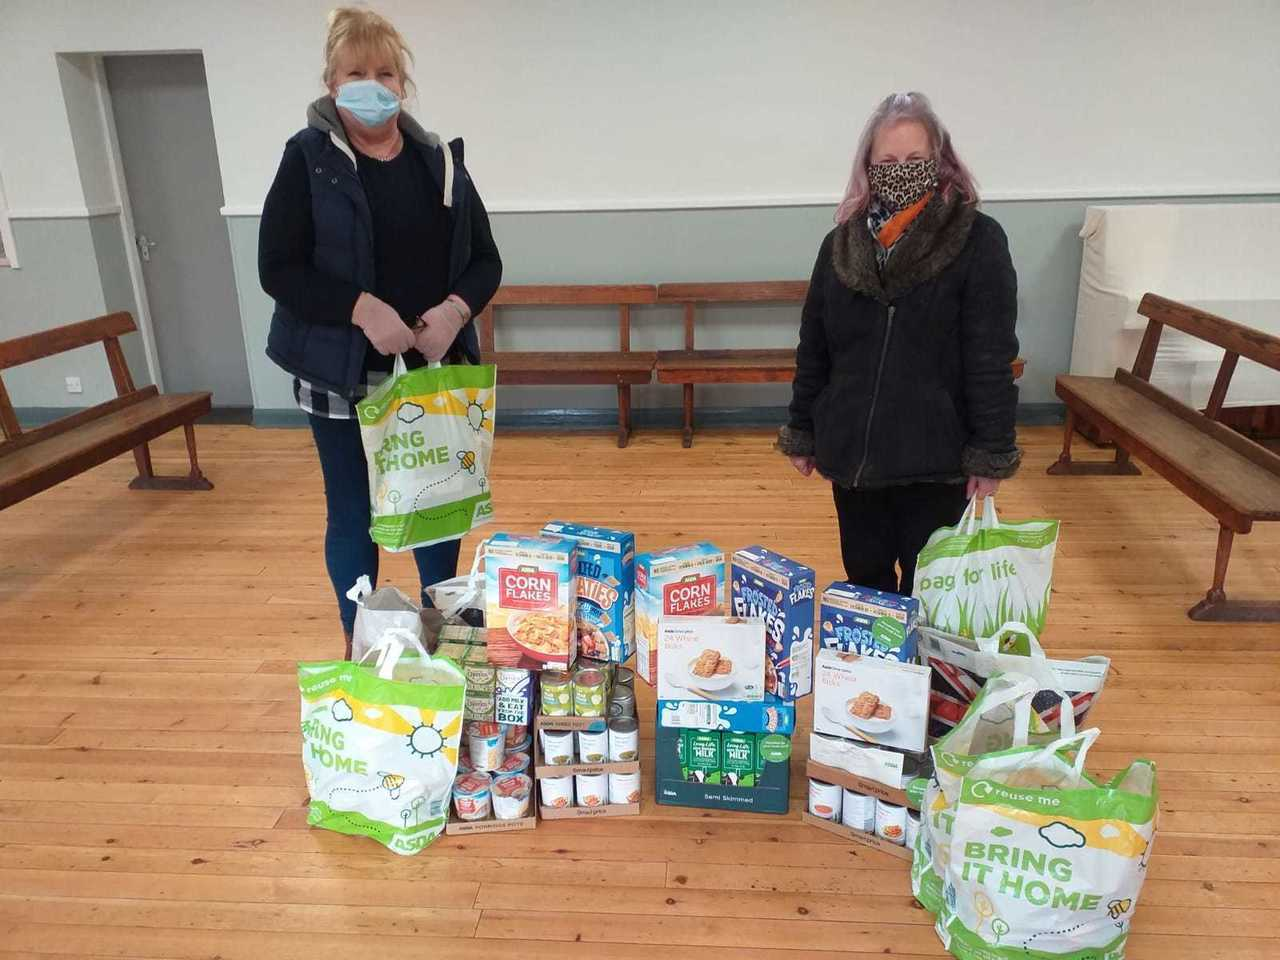 Topping up donations for St Andrew's Church Haughton Le Skerne Food Bank | Asda Darlington